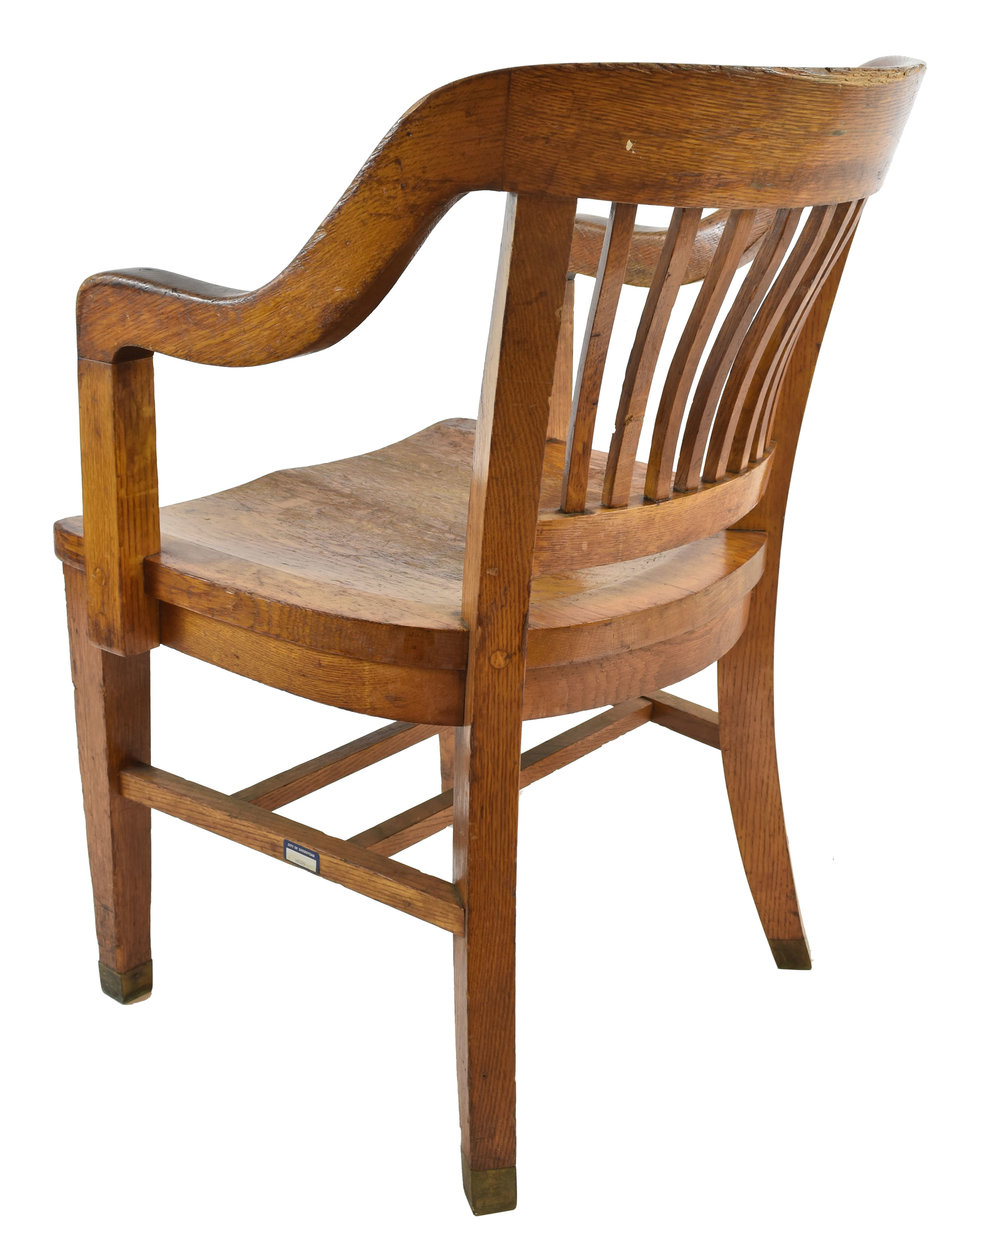 47978 courtroom oak chairs.jpg